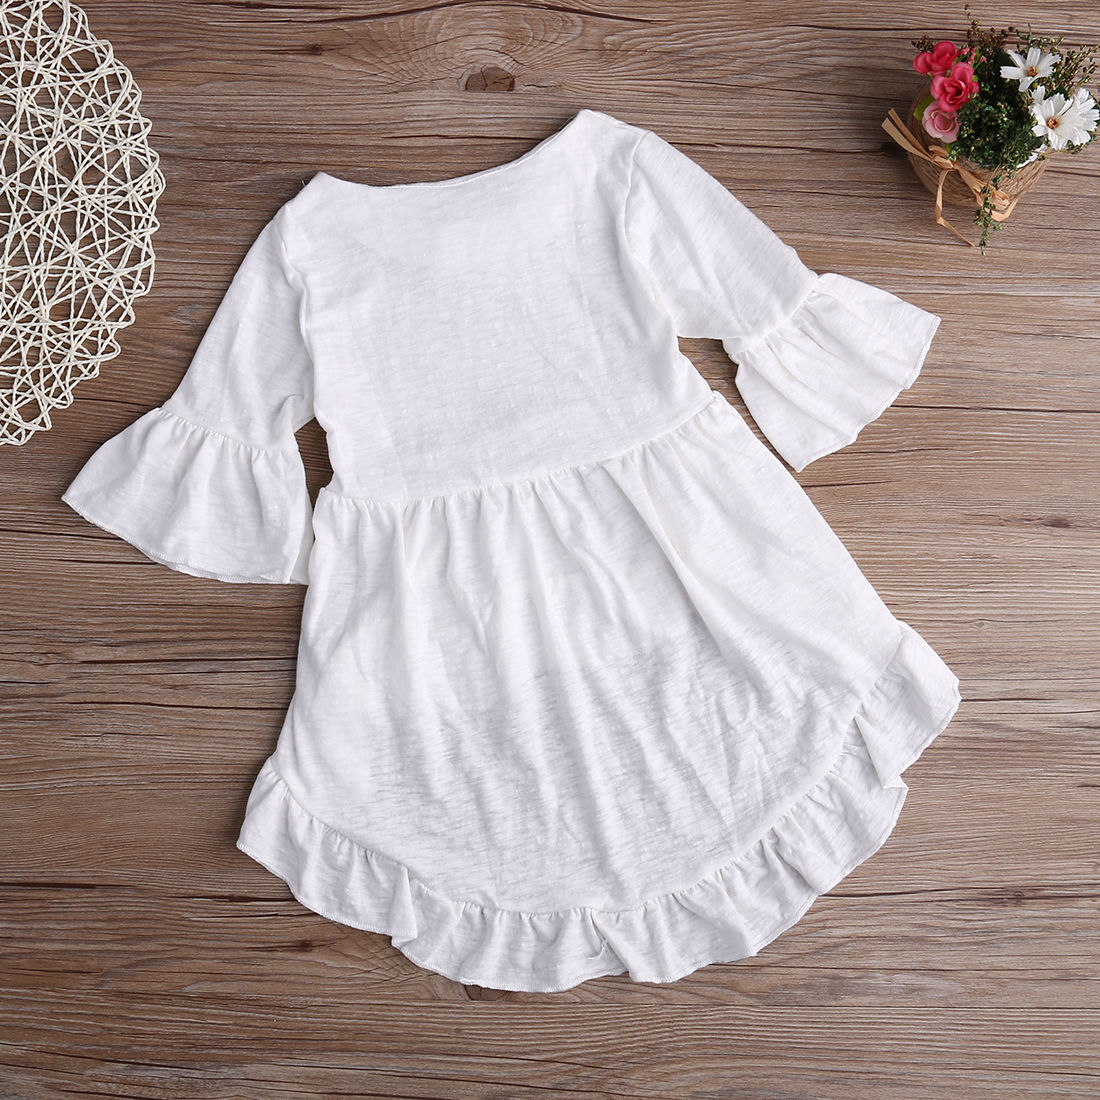 Girls Solid Color Clothing Top Blouses Baby Girls White Tops Ruffled